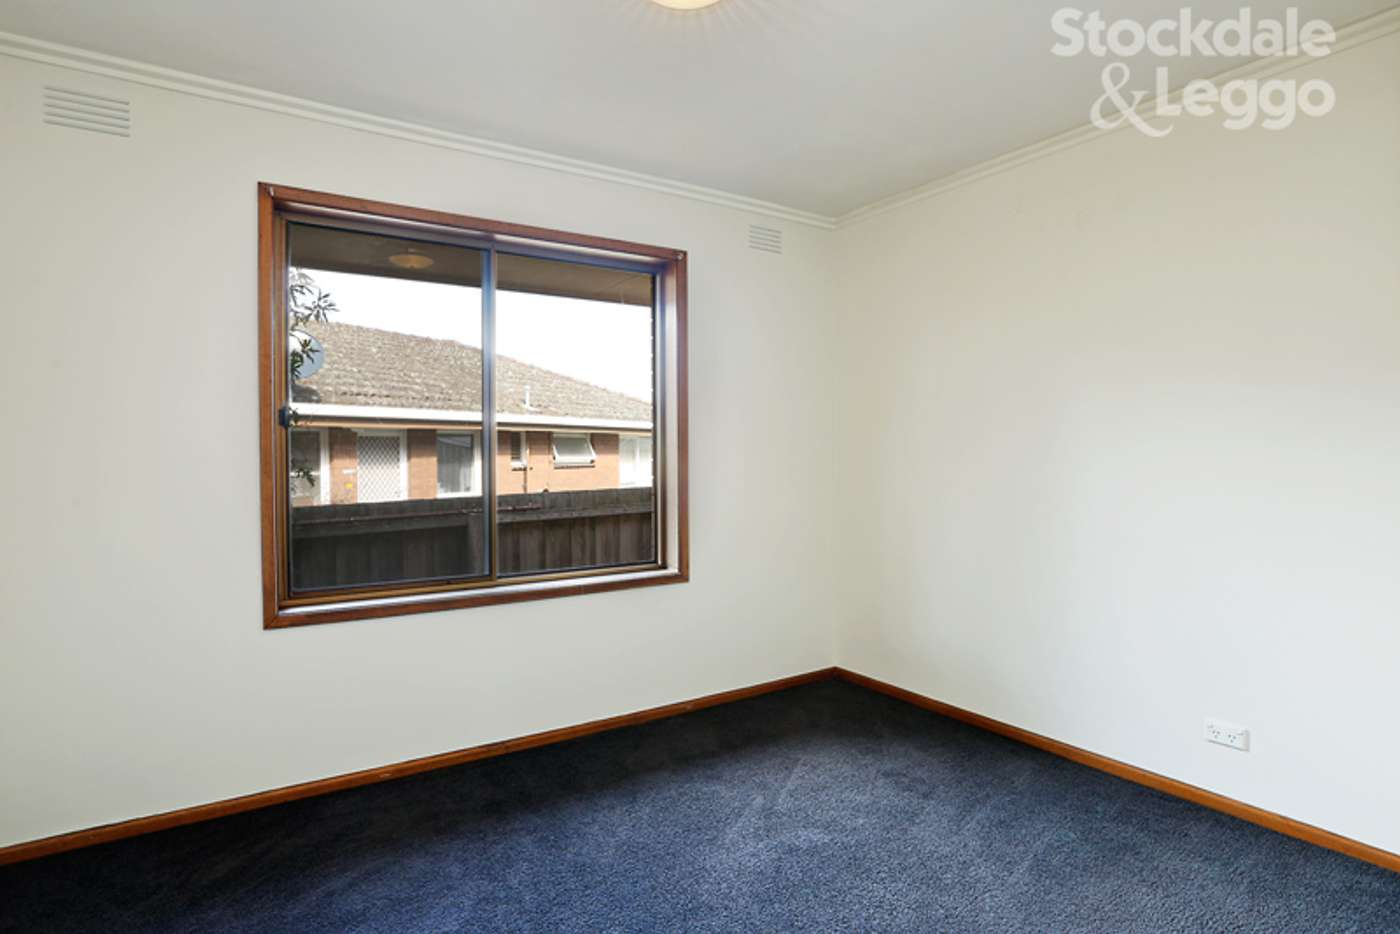 Sixth view of Homely house listing, 22 Fairfield Avenue, Belmont VIC 3216